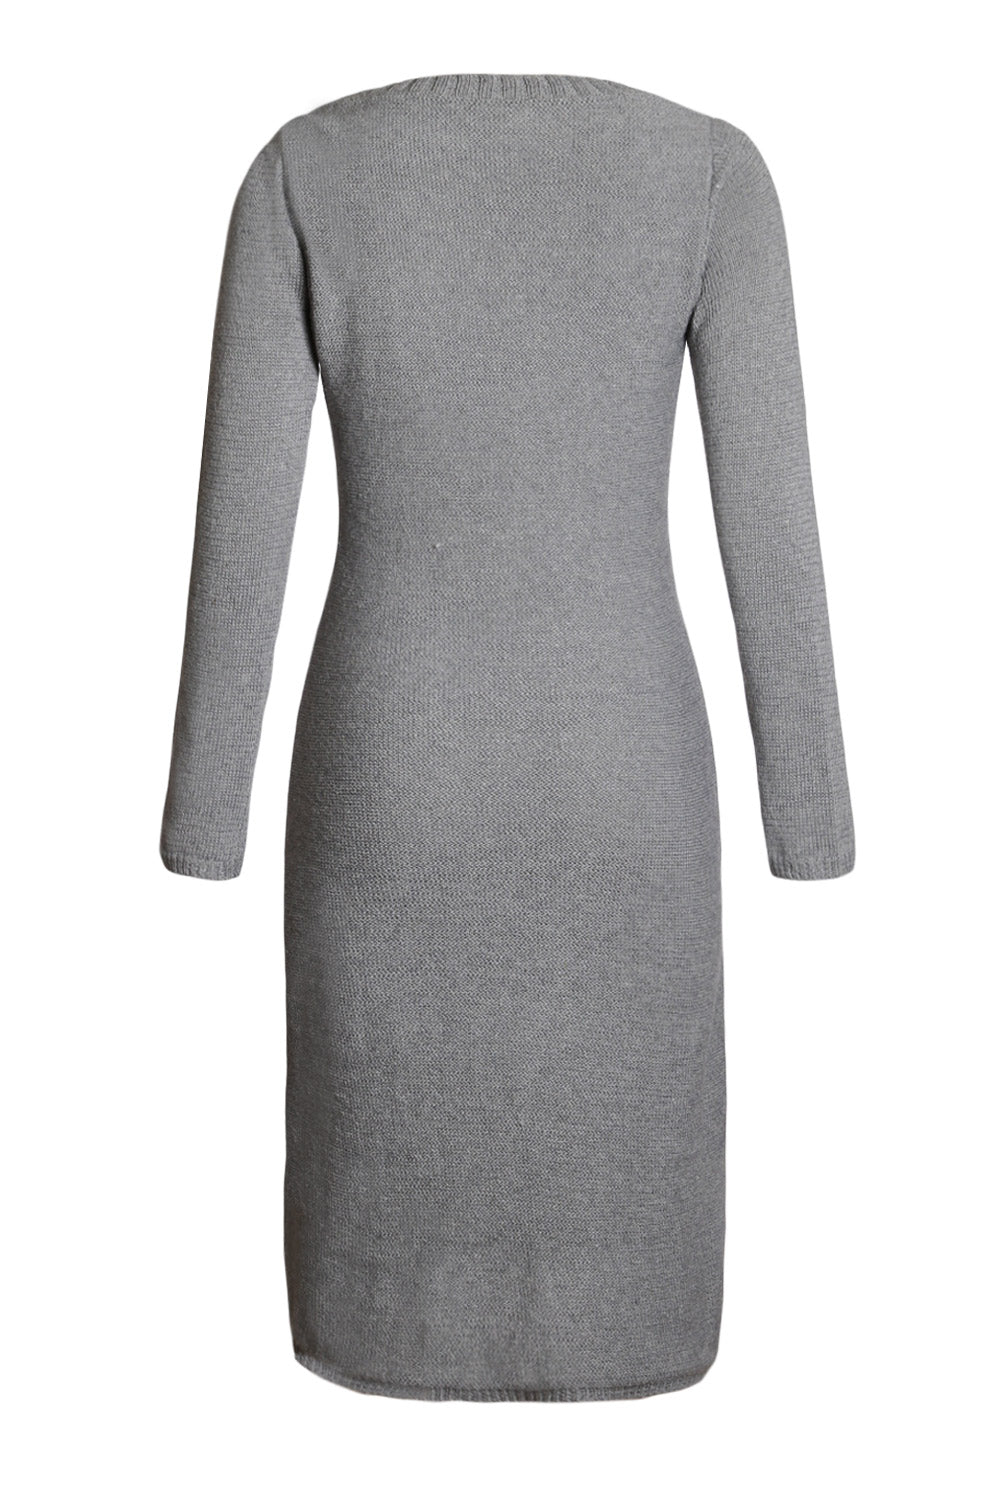 Her Fashion Grey Women's Hand Knitted Sweater Dress